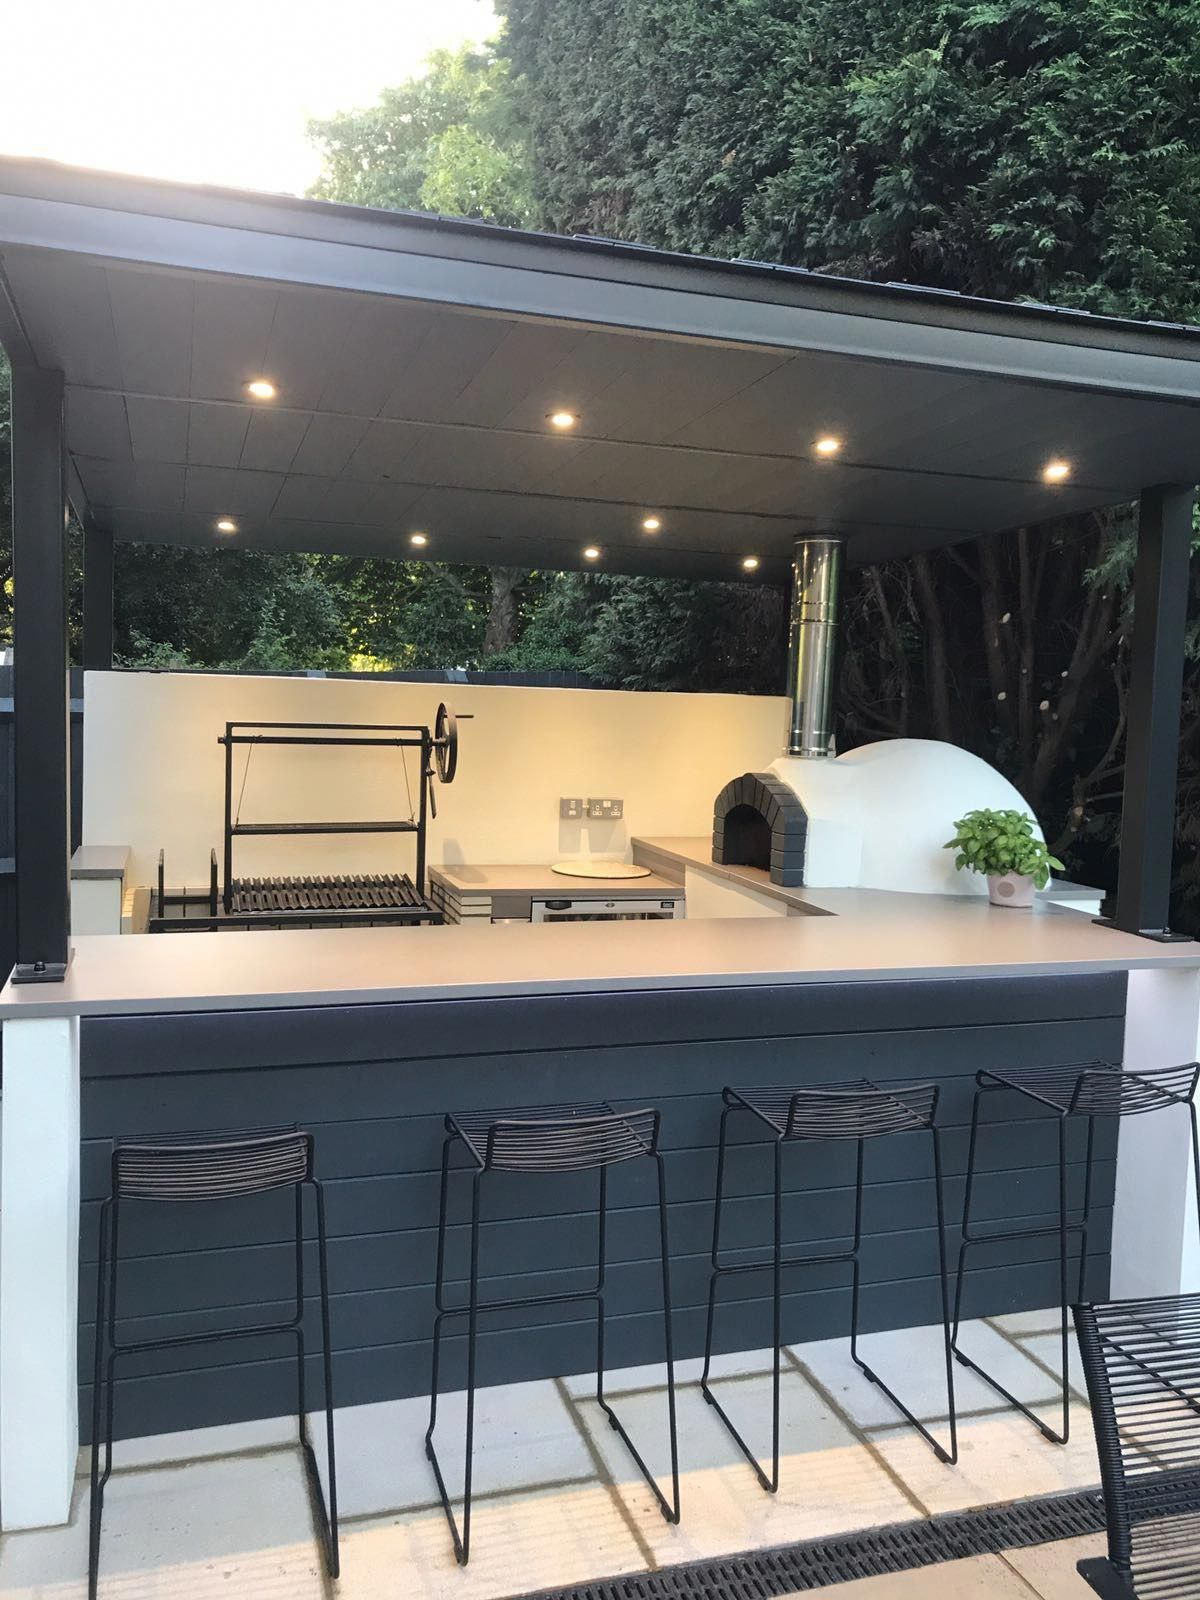 Pizza Oven Outdoor Kitchen Fabricated Steel Frame Above An Outdoor Bar Pizza Oven And Small Outdoor Kitchens Outdoor Kitchen Bars Pizza Oven Outdoor Kitchen